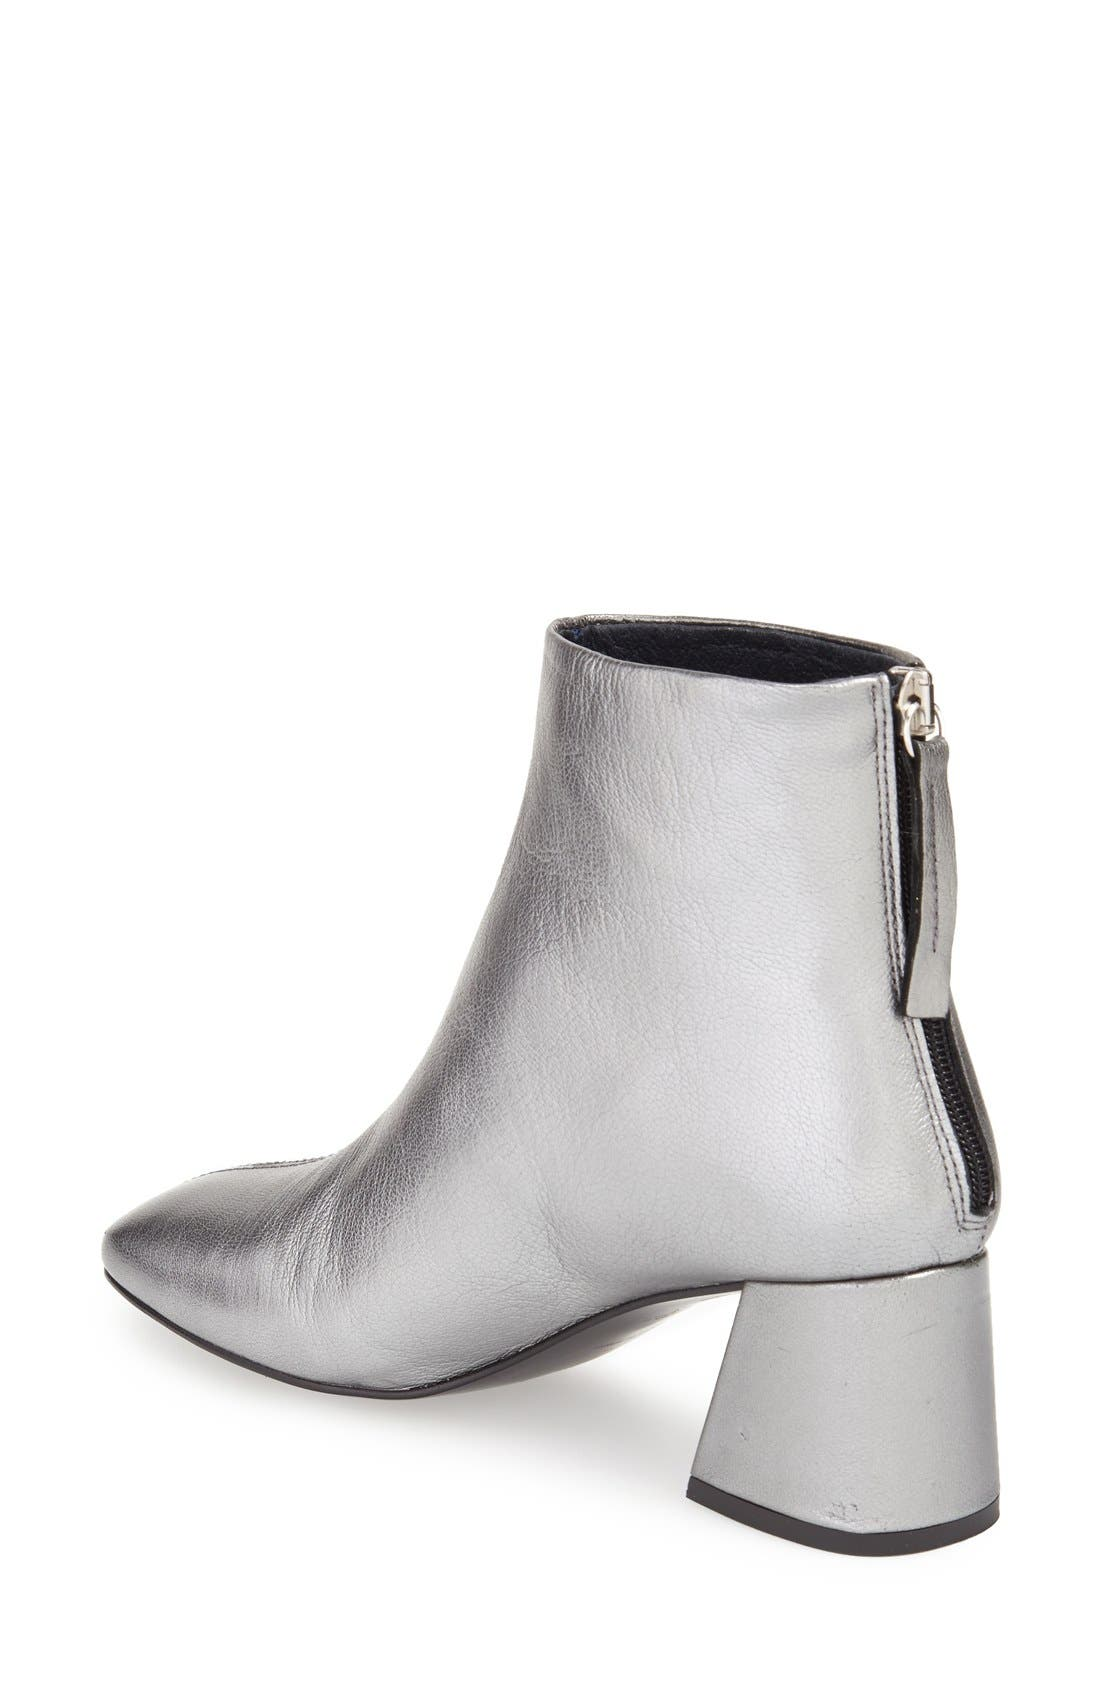 'Maggie' Flared Heel Bootie,                             Alternate thumbnail 2, color,                             Silver